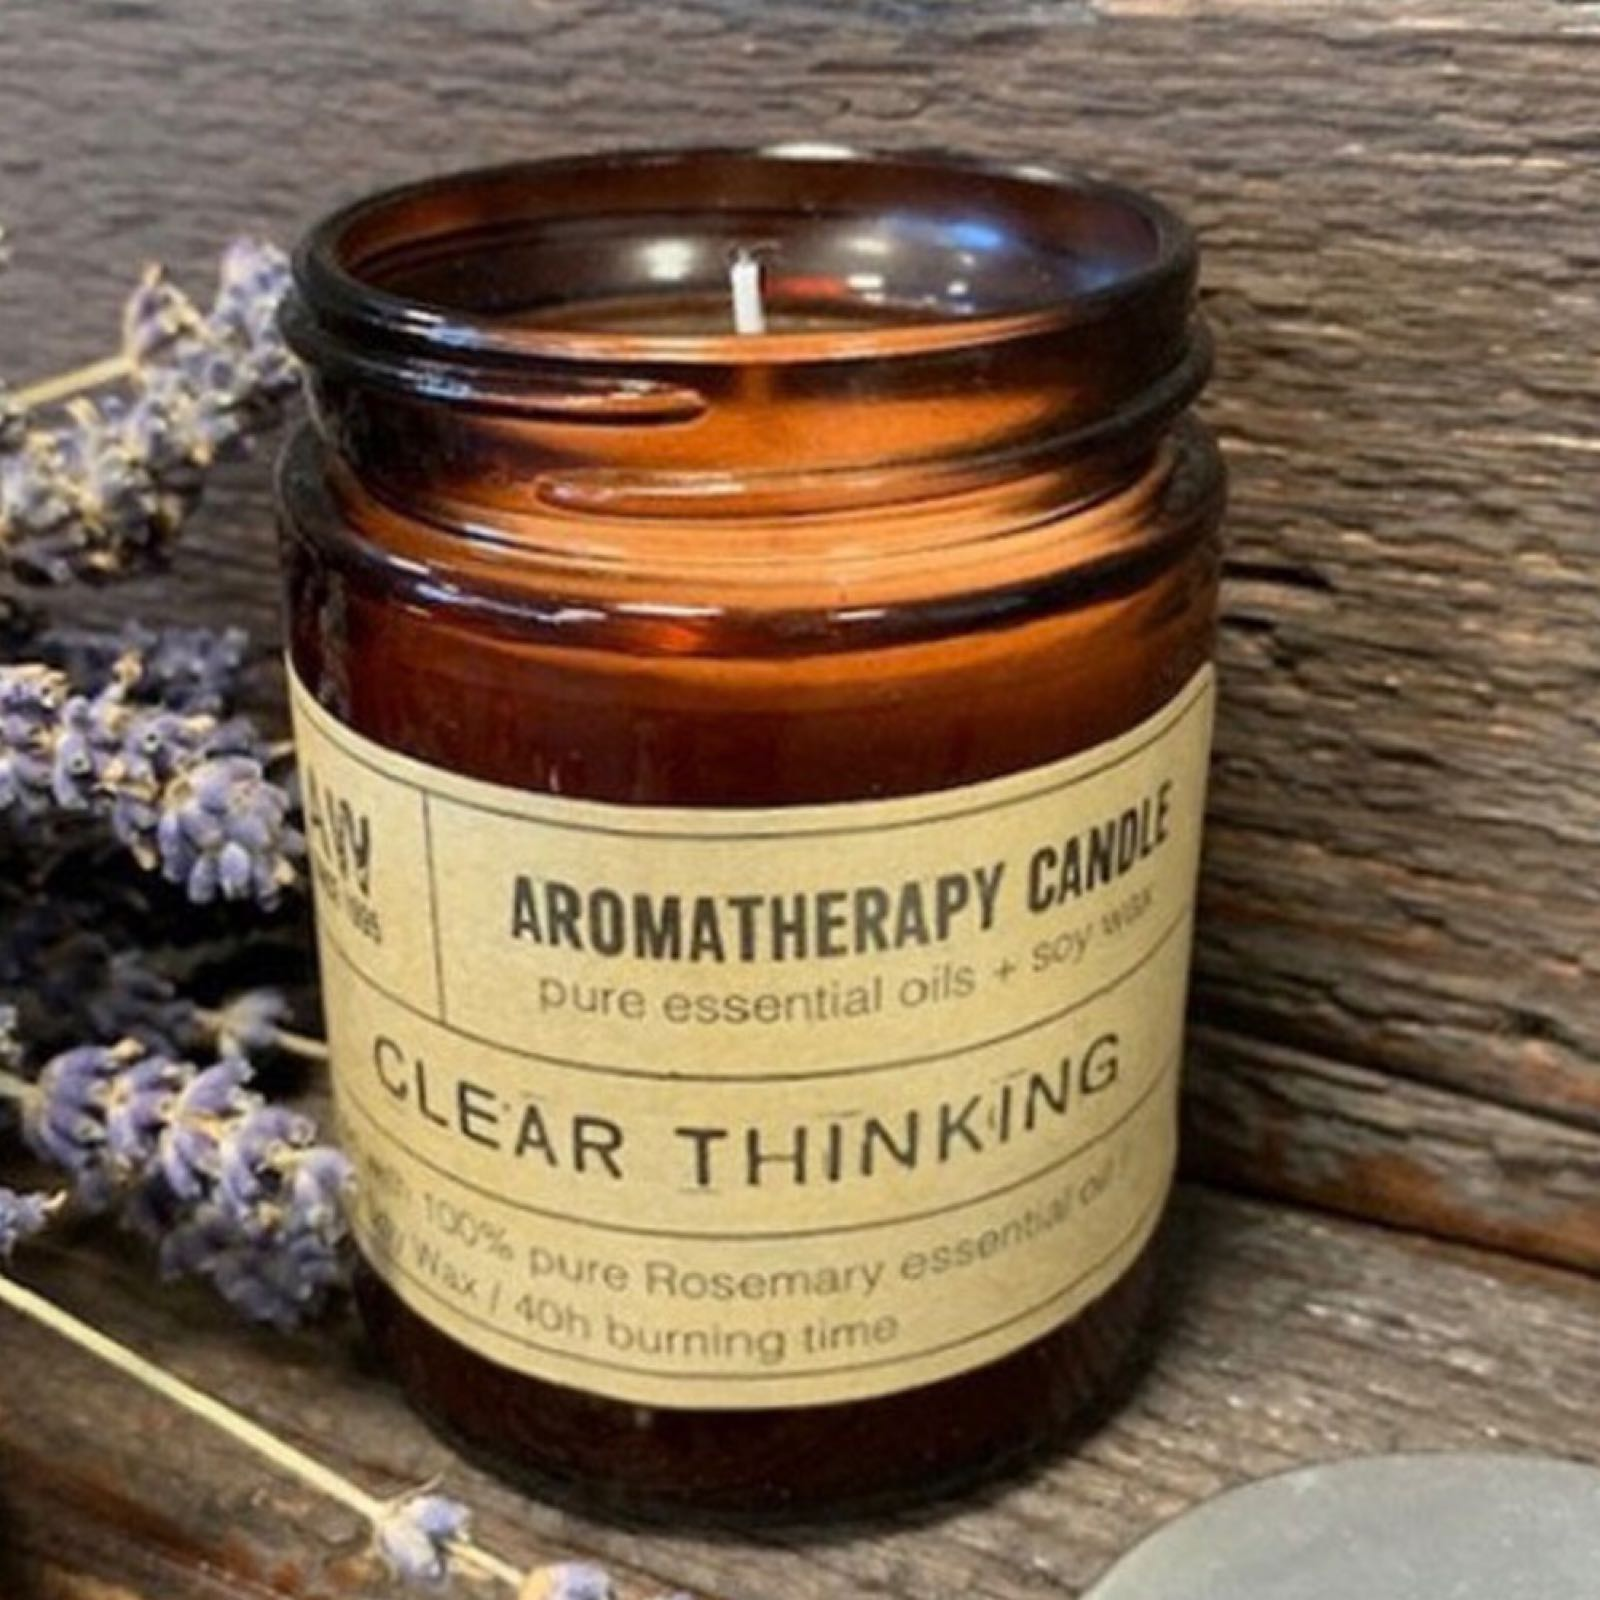 Clear Thinking Aromatherapy Candle